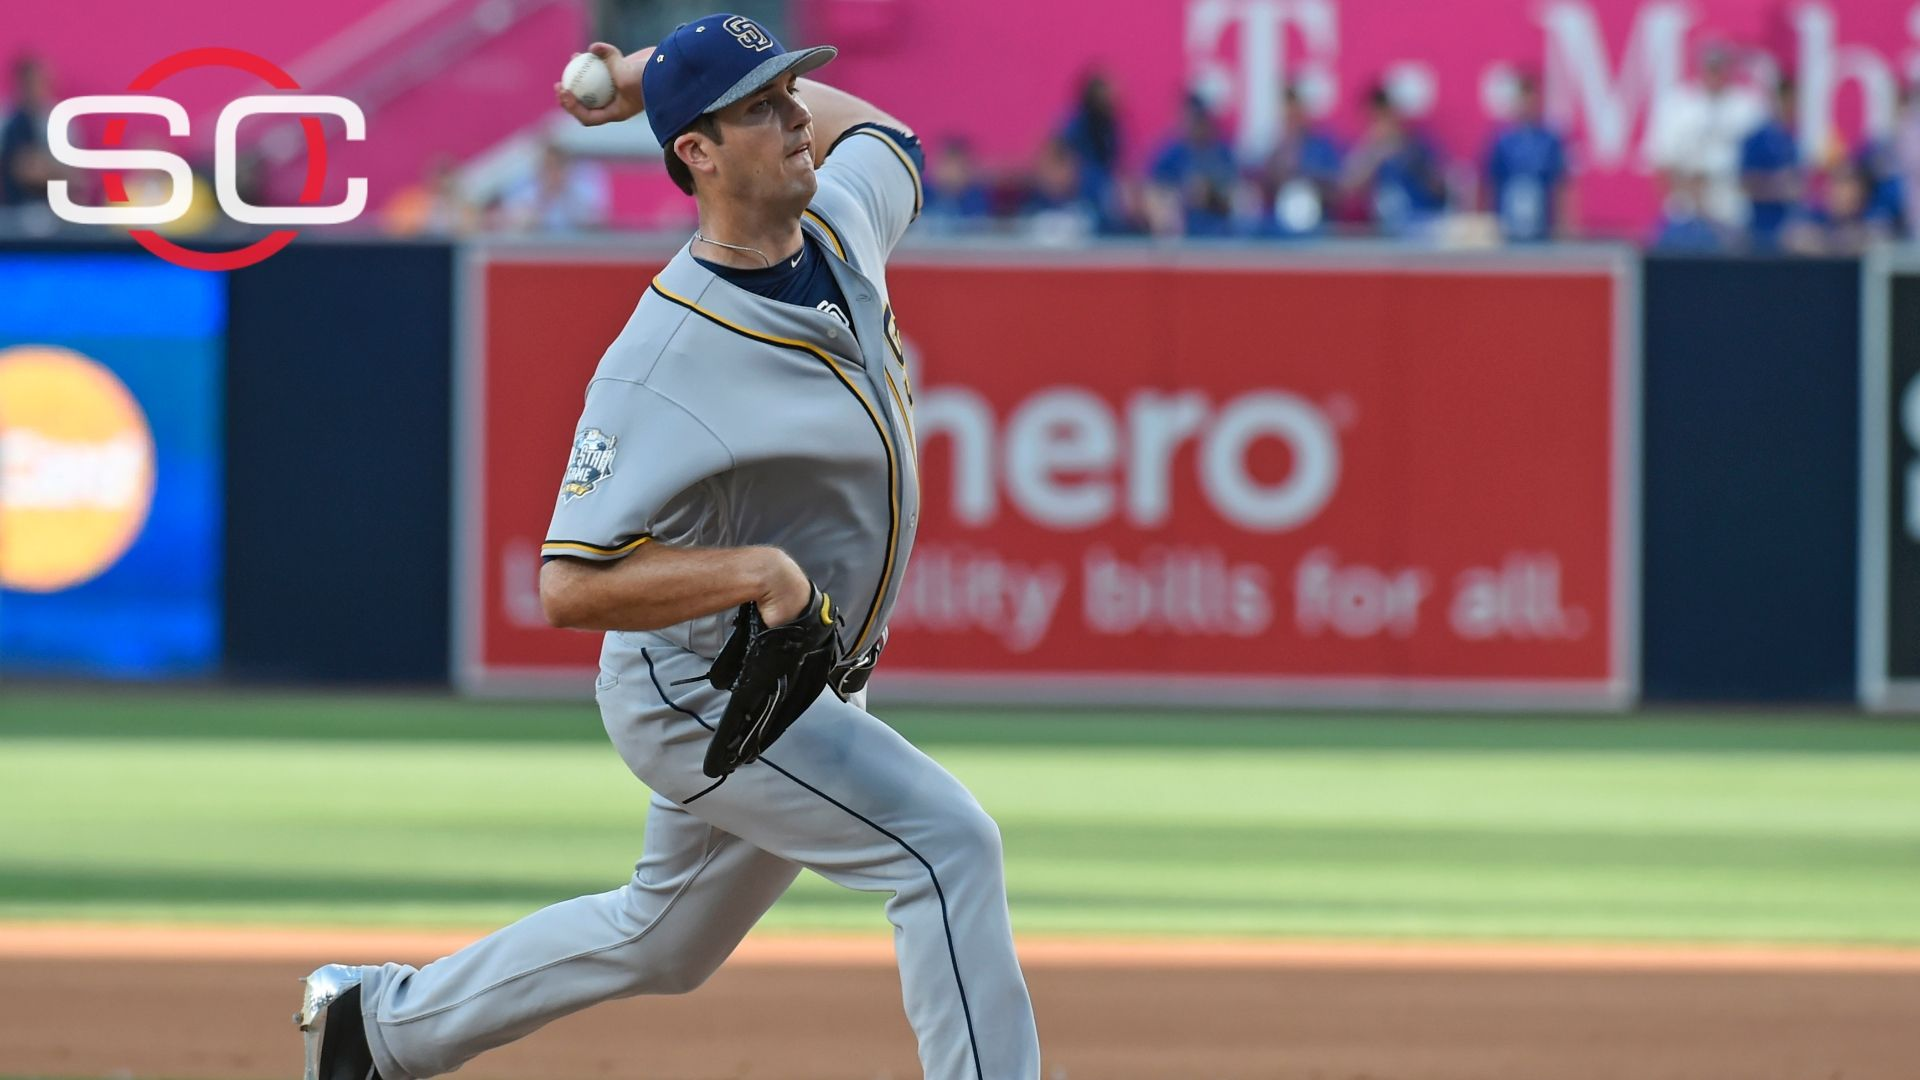 Stark: Red Sox paid a big price for Pomeranz